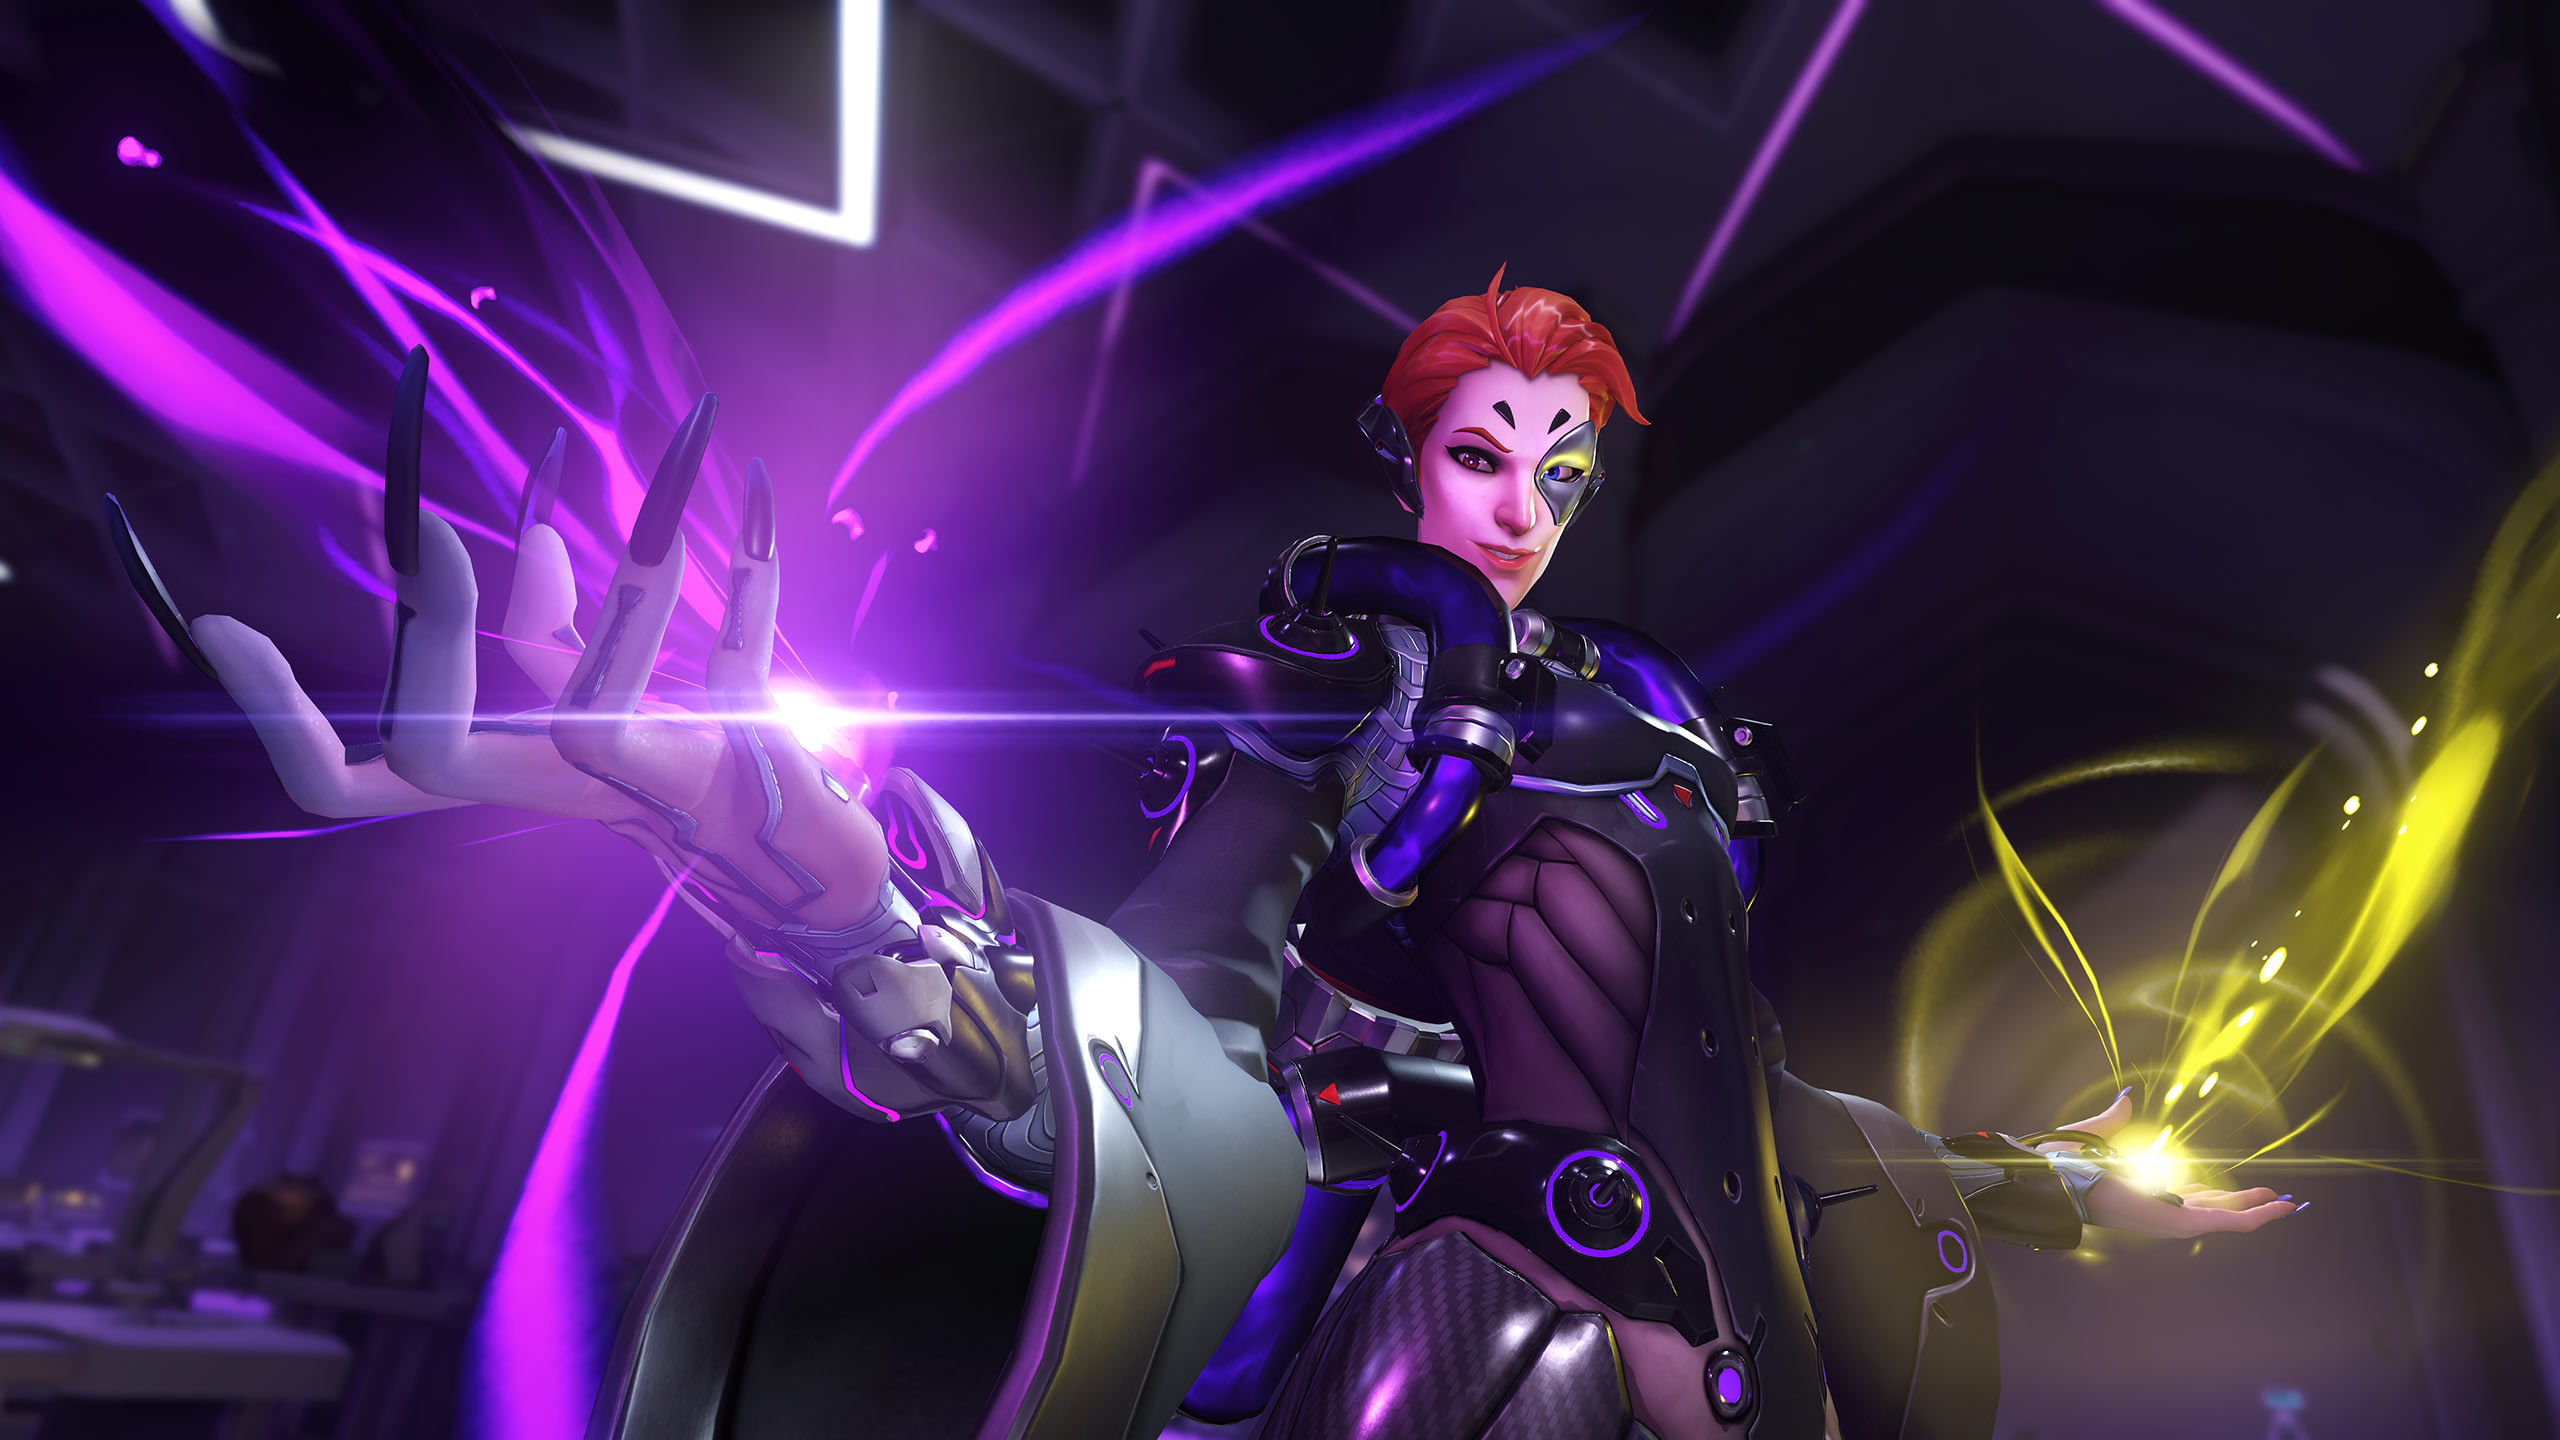 Overwatch' gets a new healer hero and another map